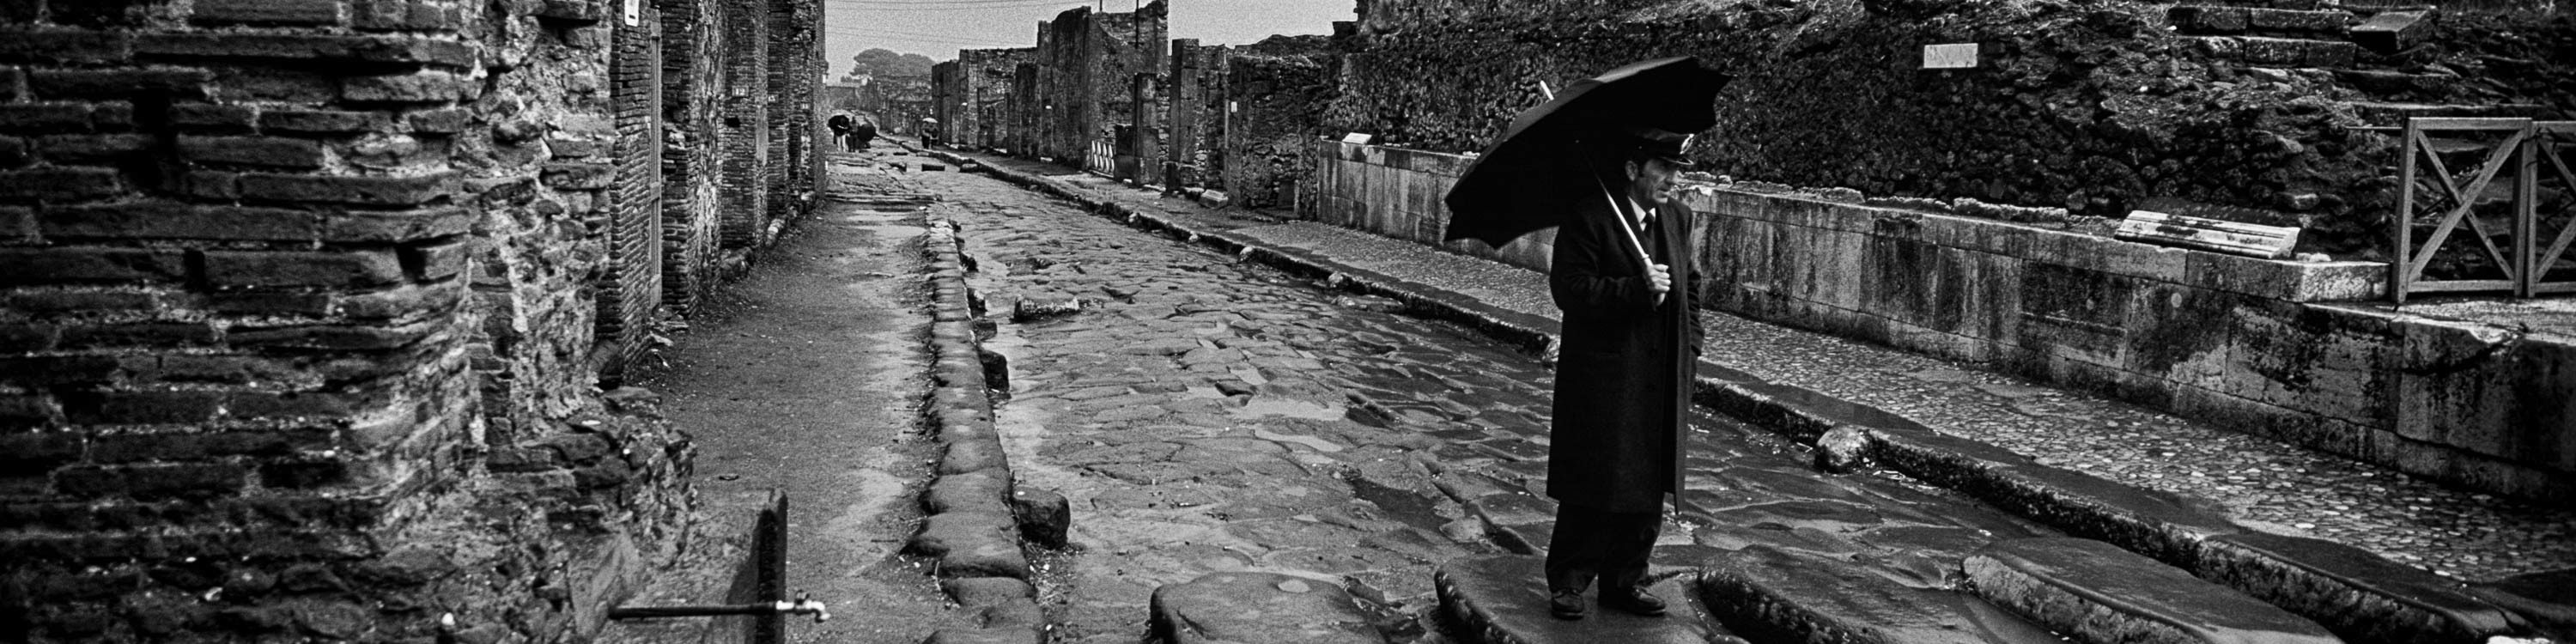 <div class='title'>           Man-with-Umbrella-in-Pompeii--Italy-Italy-132-32-BW-ASB-mijvru         </div>